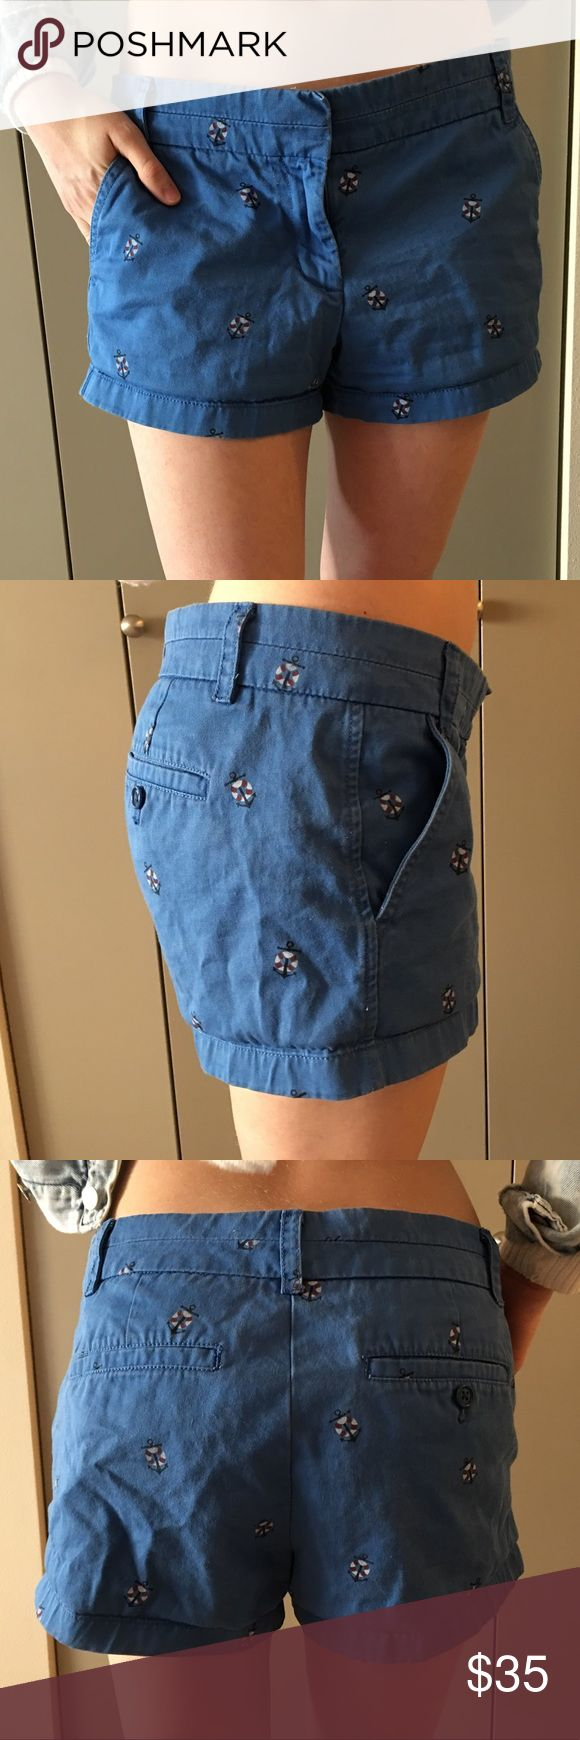 J. Crew Chino Nautical Shorts Size 6. No stretch. Anchor detail. Gold zipper and clasp. J. Crew Shorts